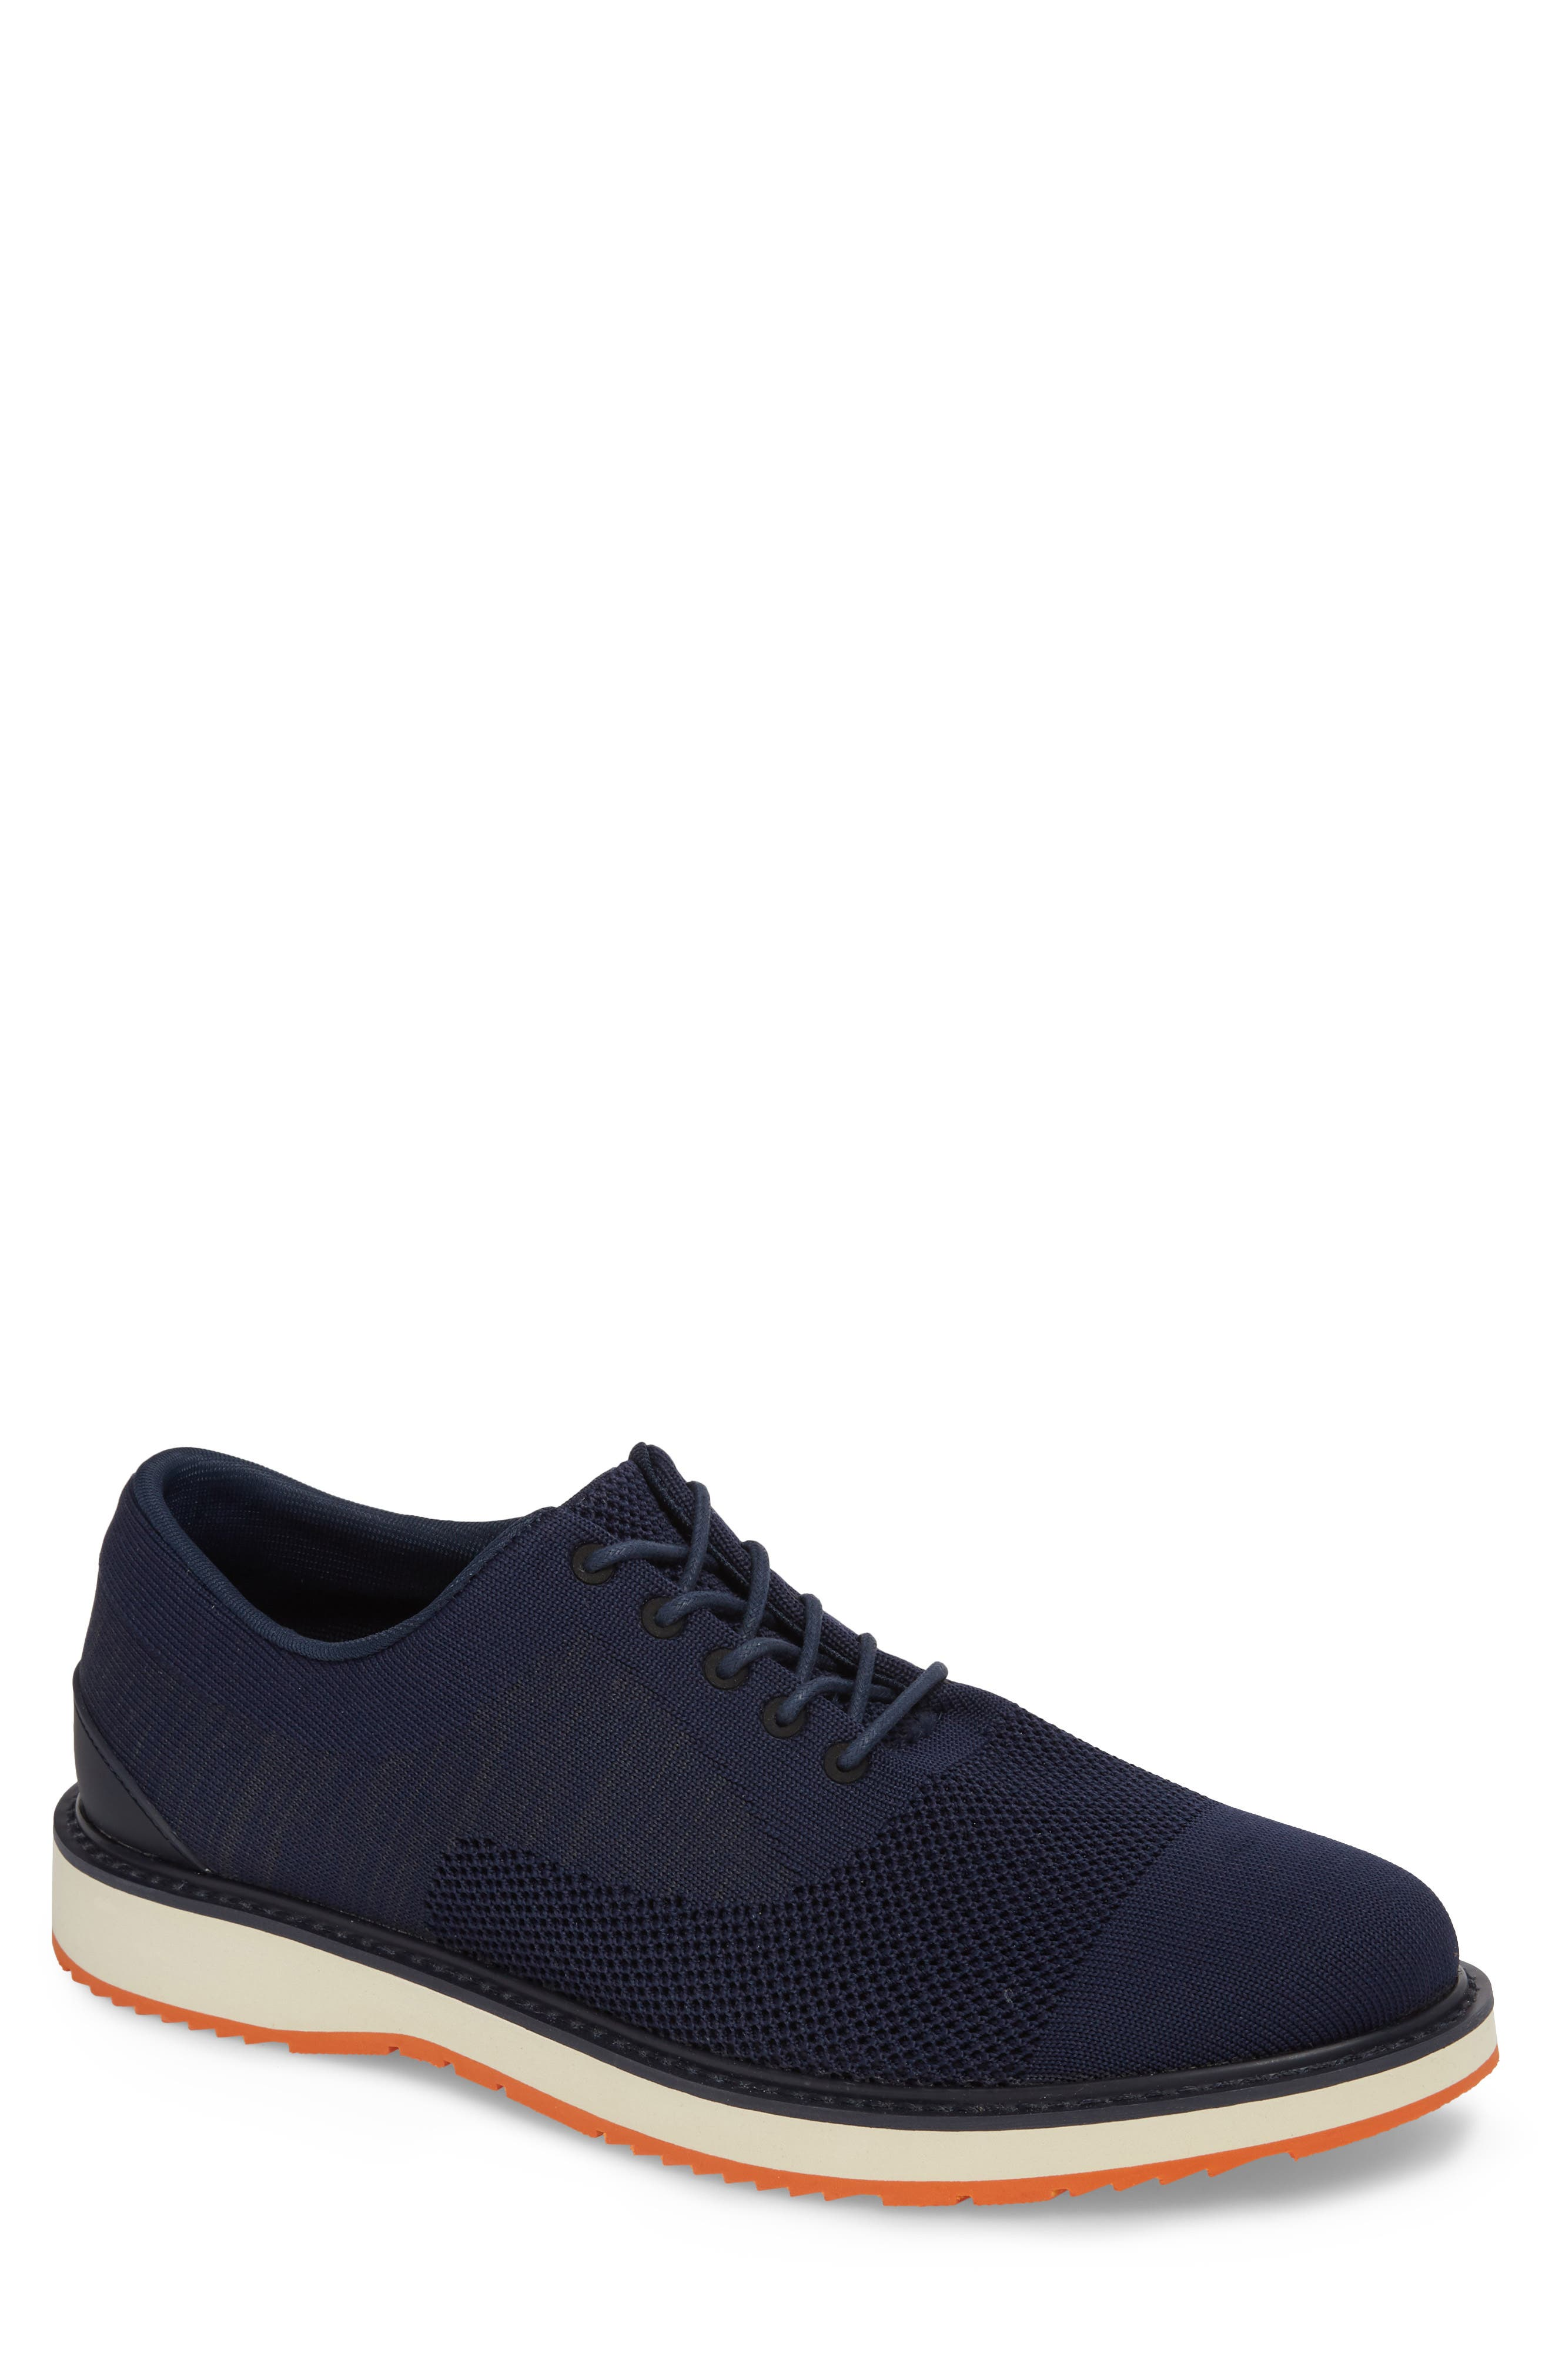 Main Image - Swims Barry Knit Oxford (Men)